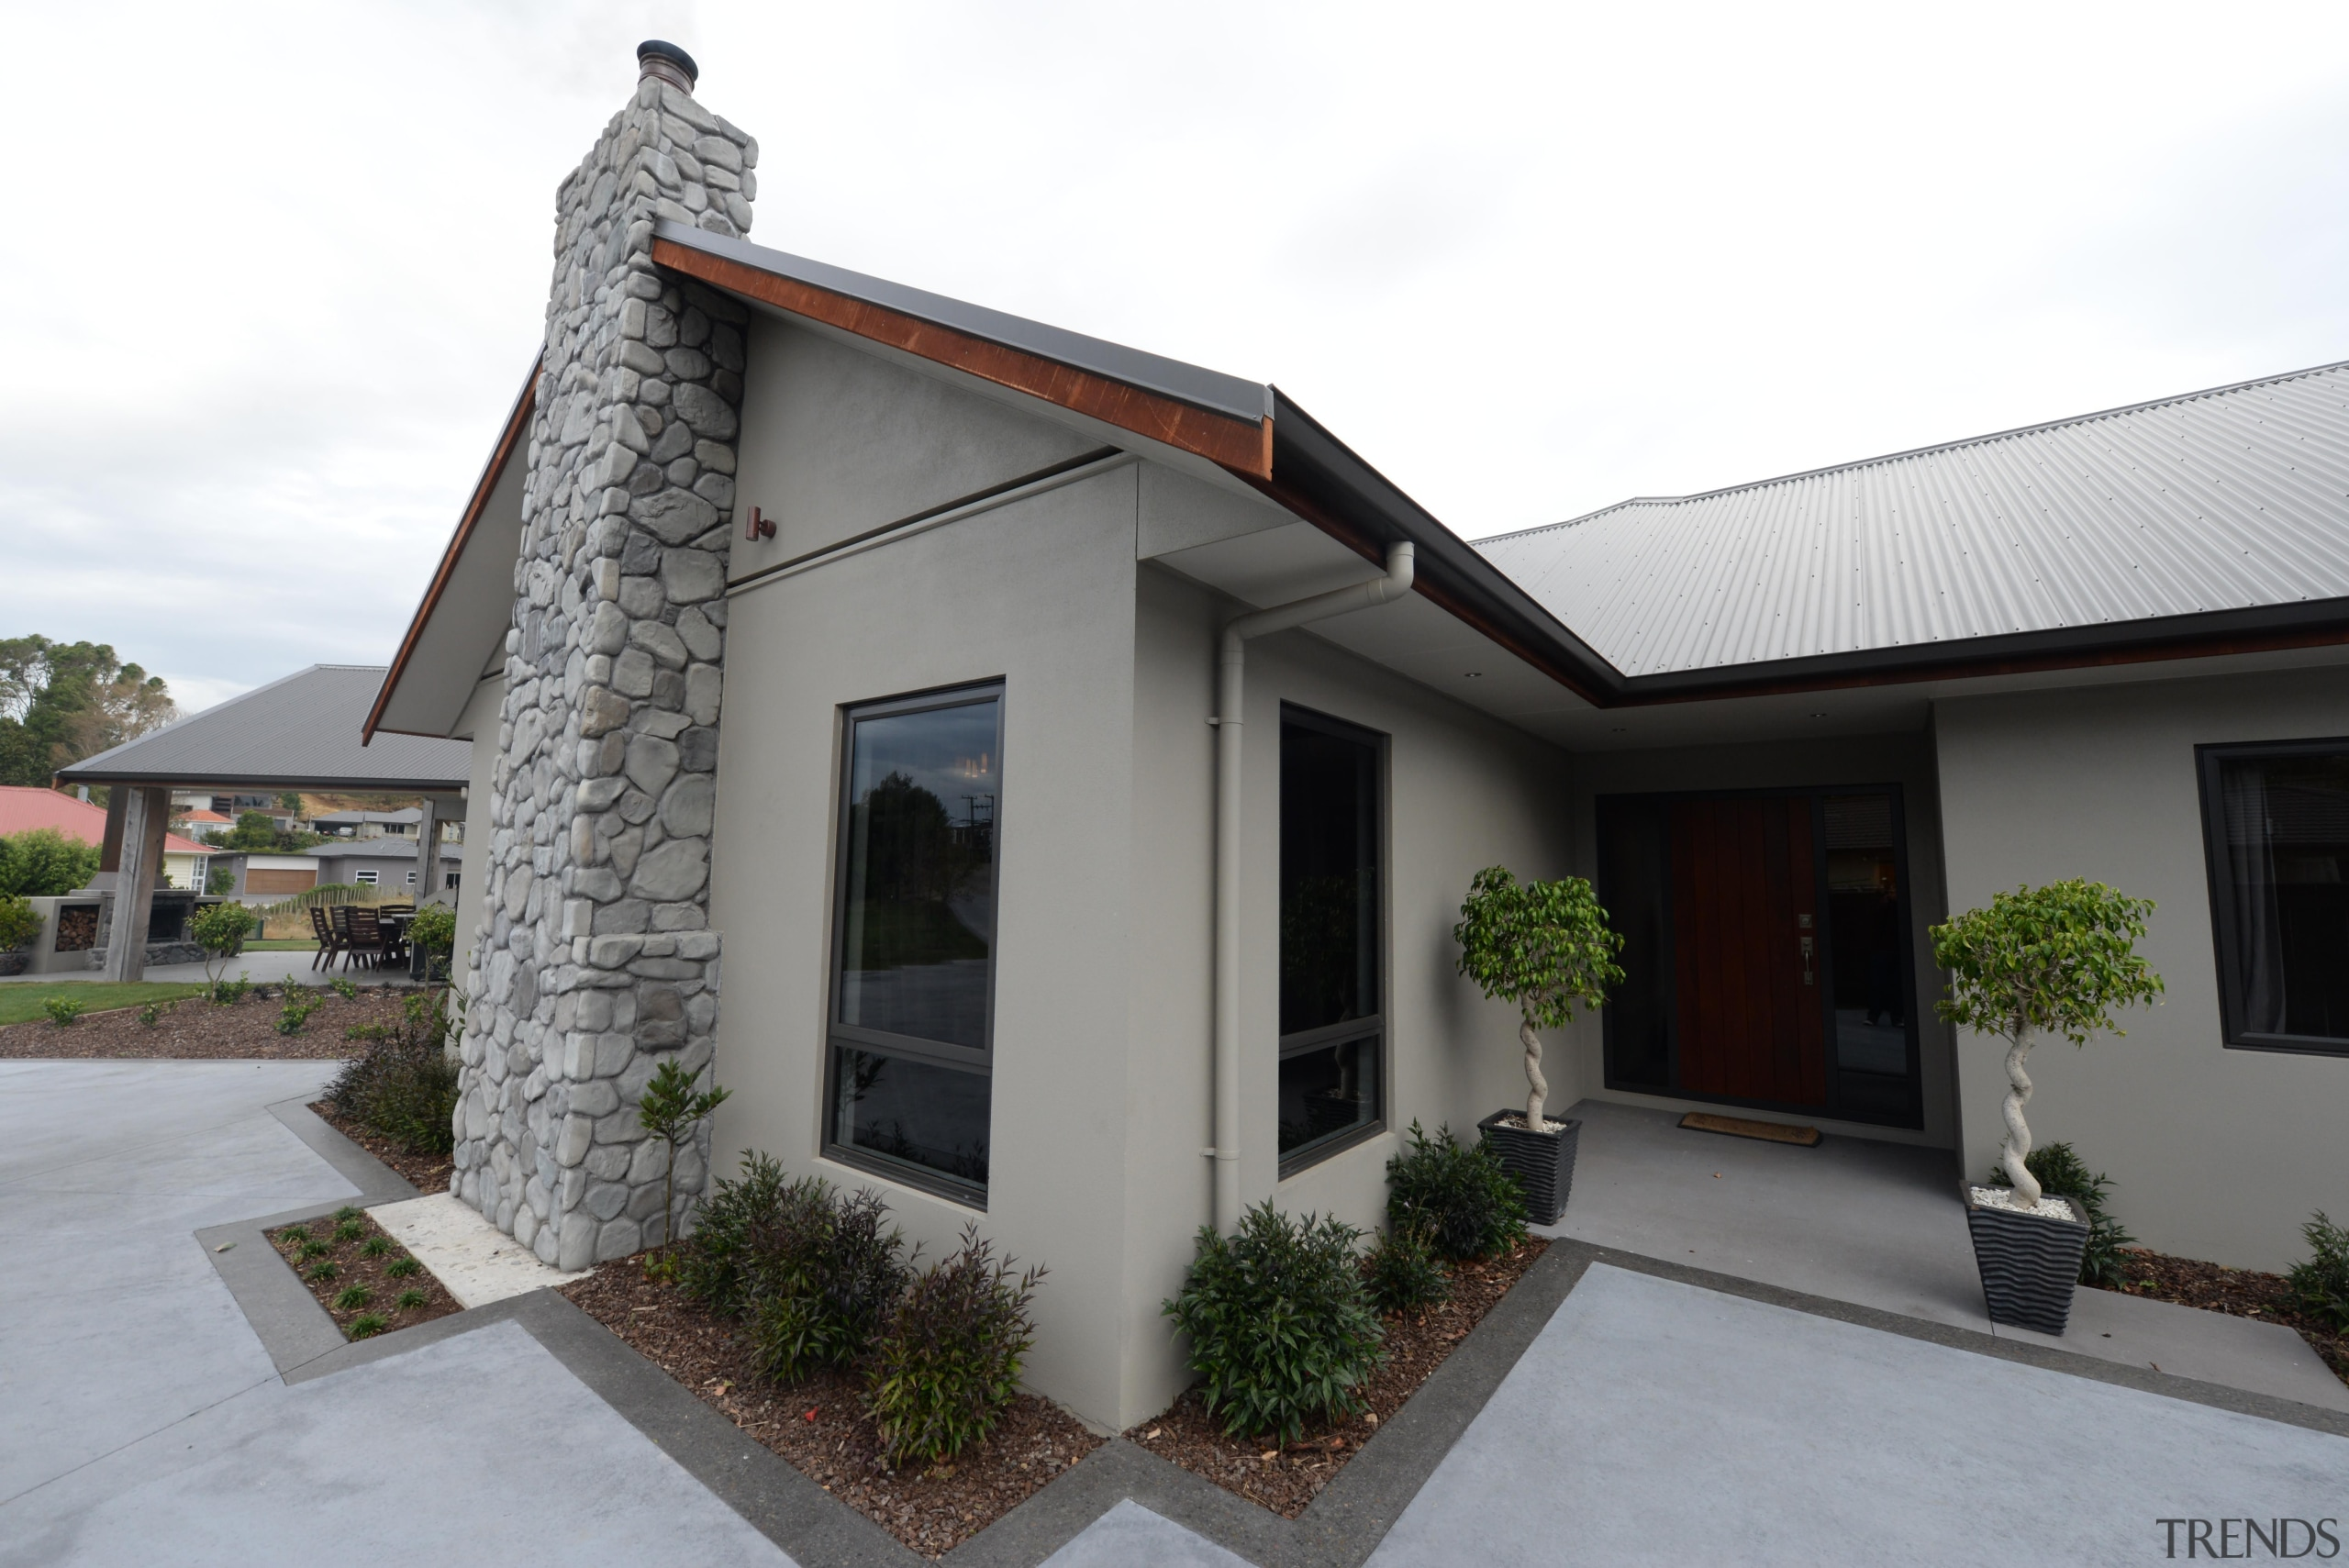 Concrete pre -cast panel home by Fowler Homes cottage, estate, facade, home, house, property, real estate, residential area, roof, window, white, gray